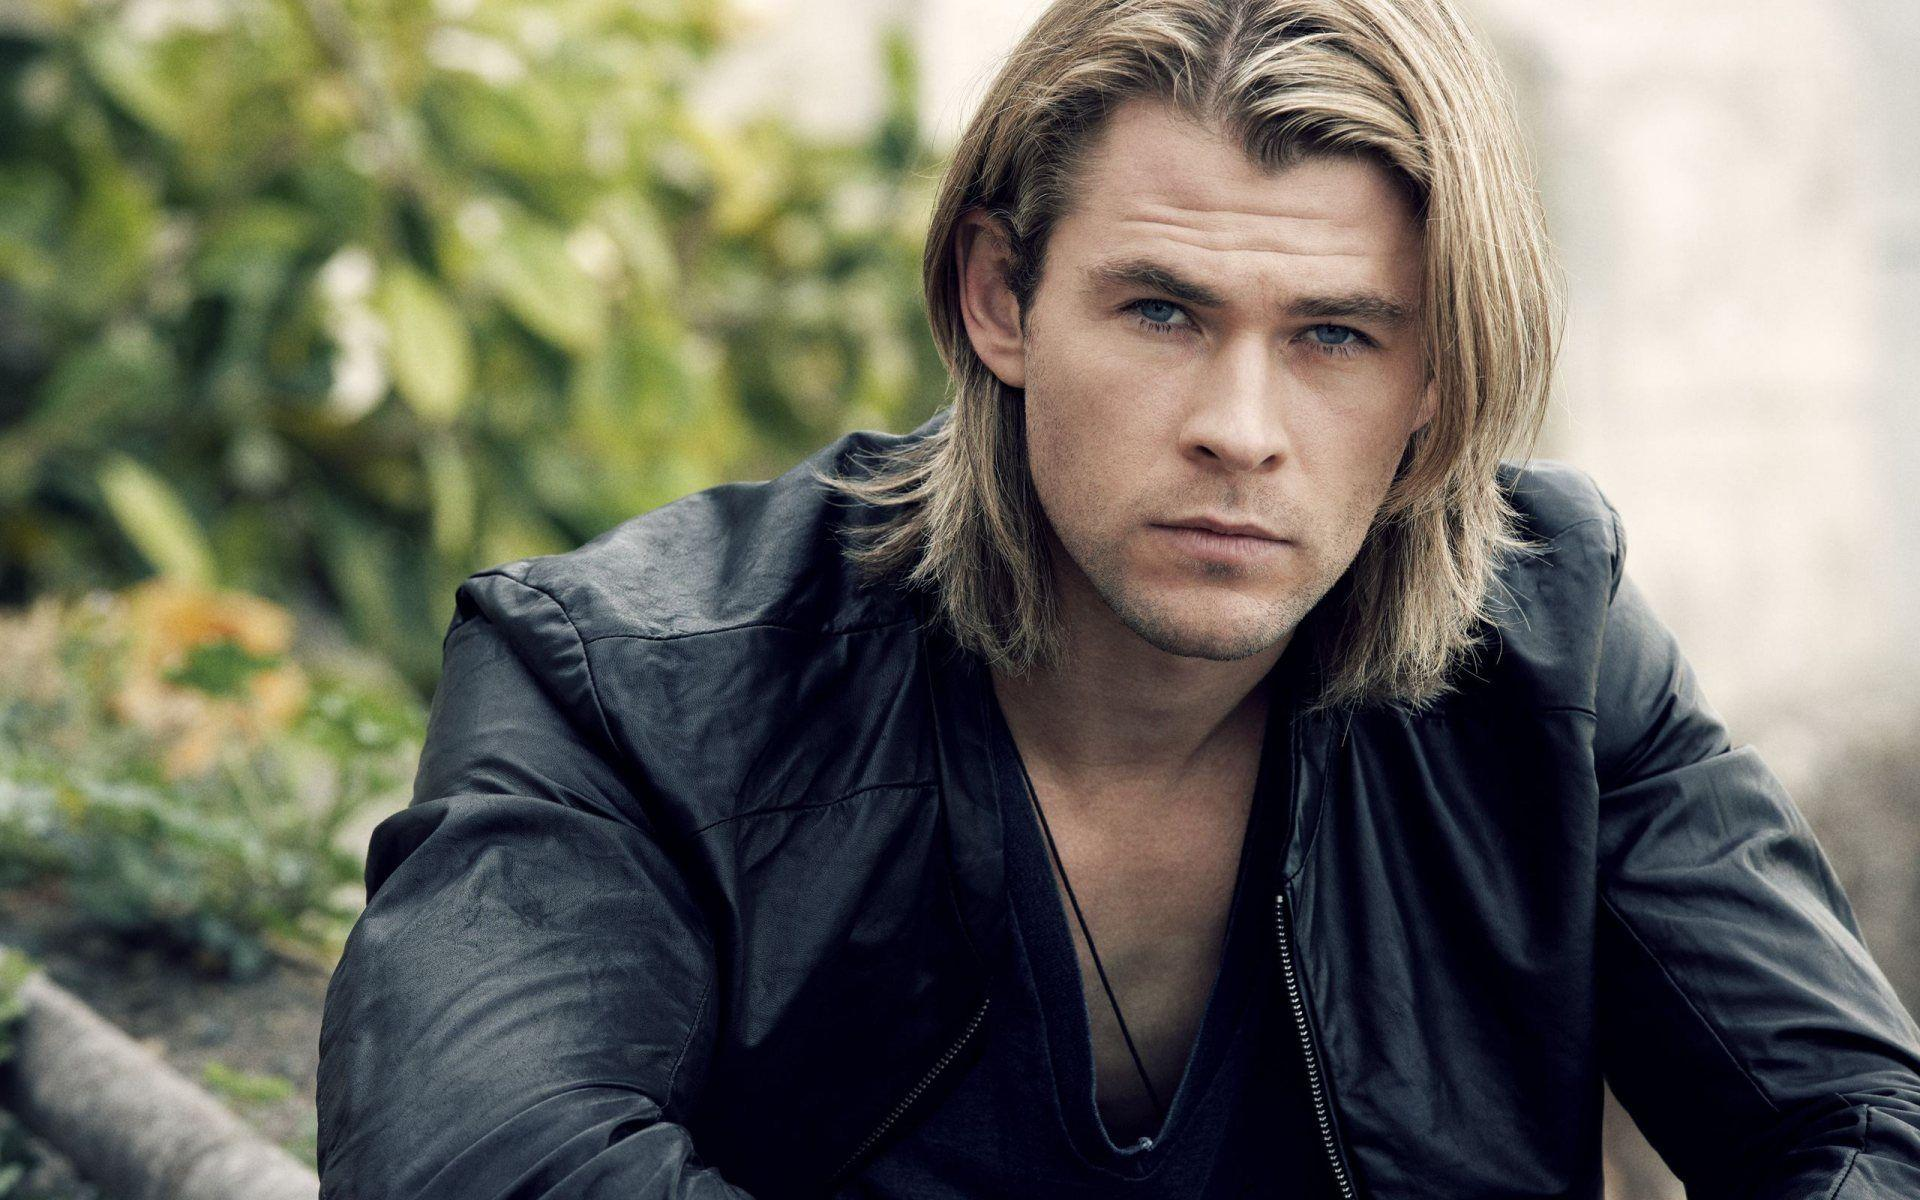 Chris Hemsworth Looking Handsome Wallpapers - 1920x1200 - 335905